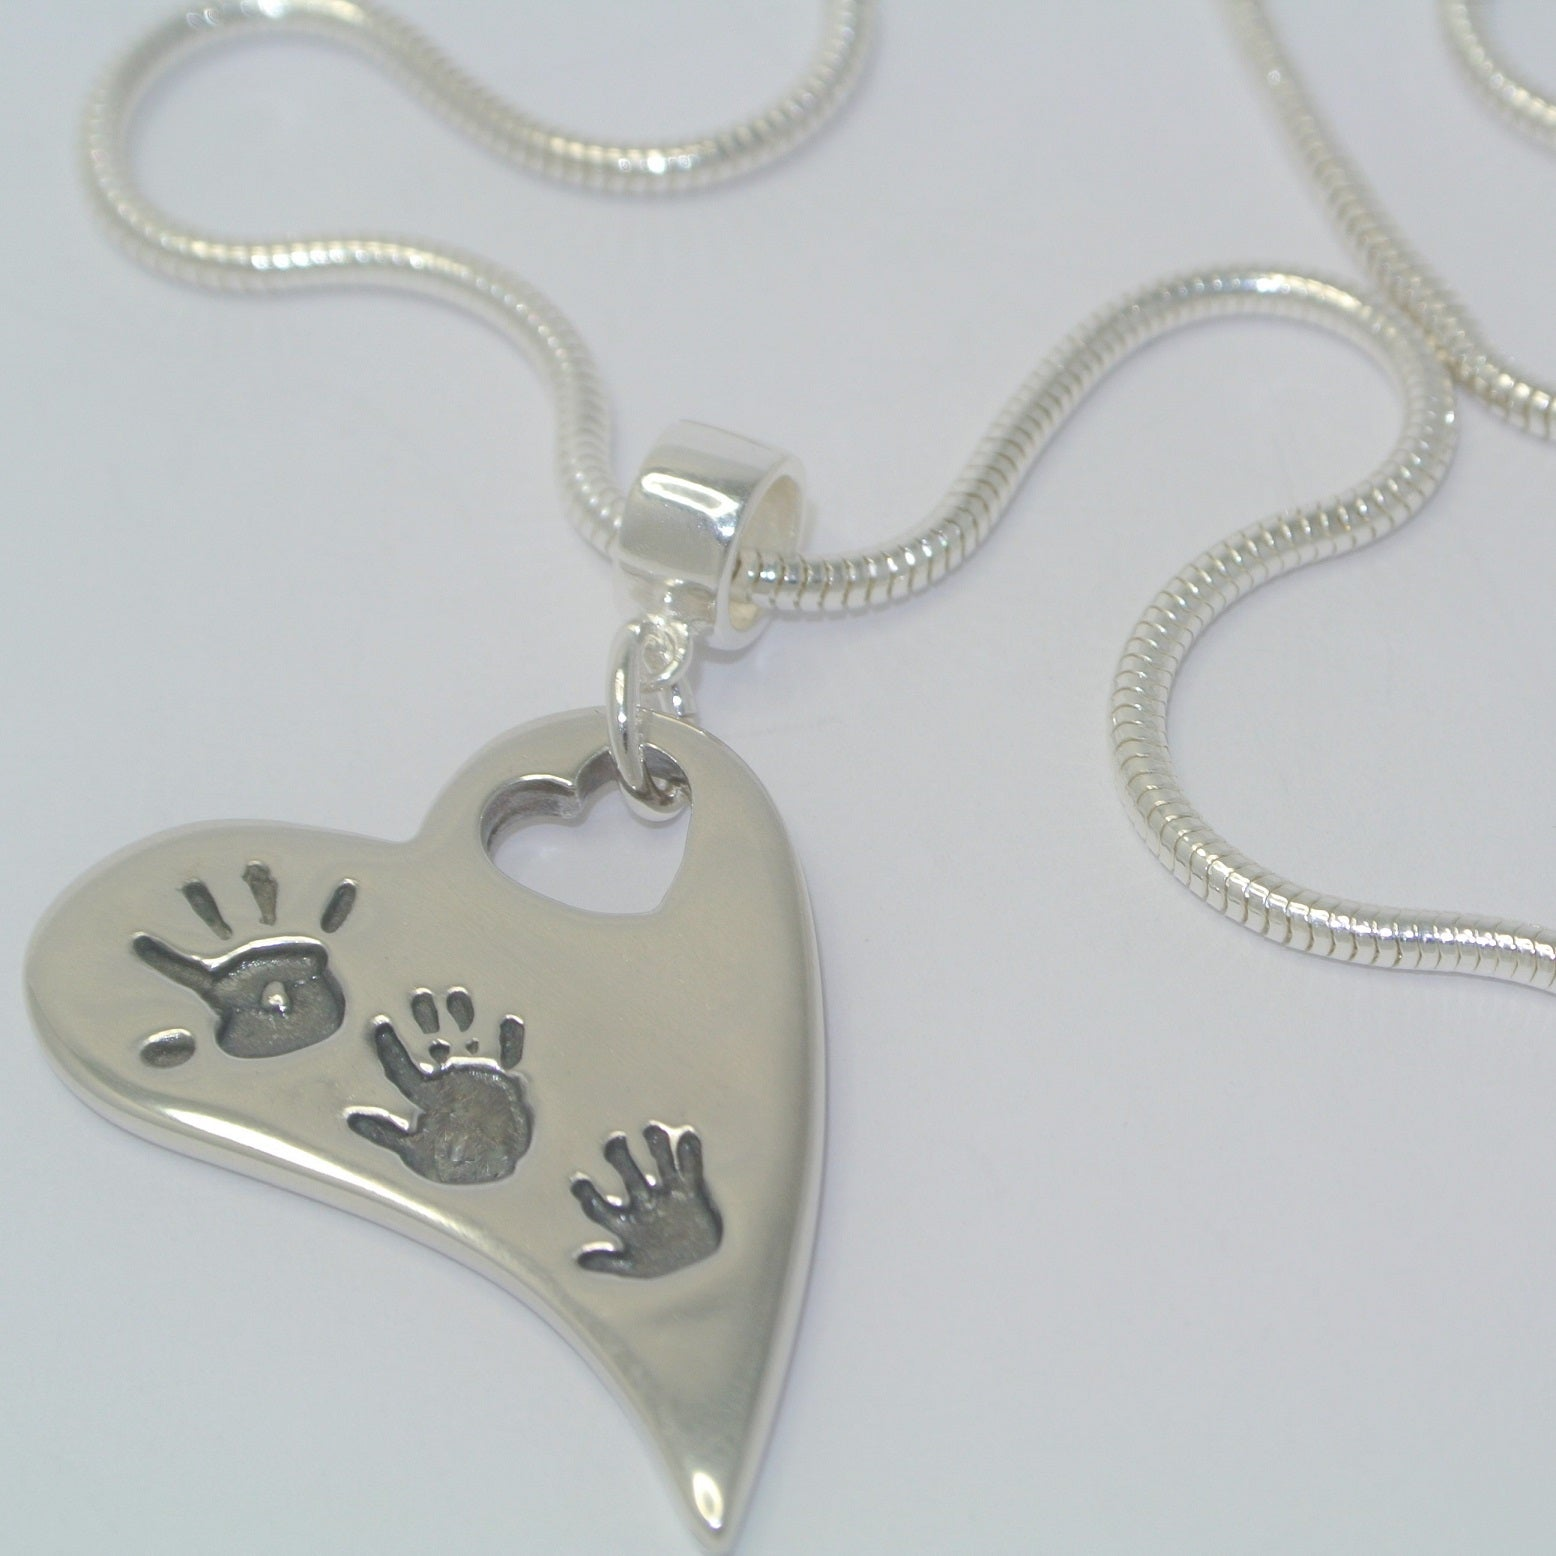 Two/Three Handprint Wavy Heart Necklace with Mini Heart Cut-Out